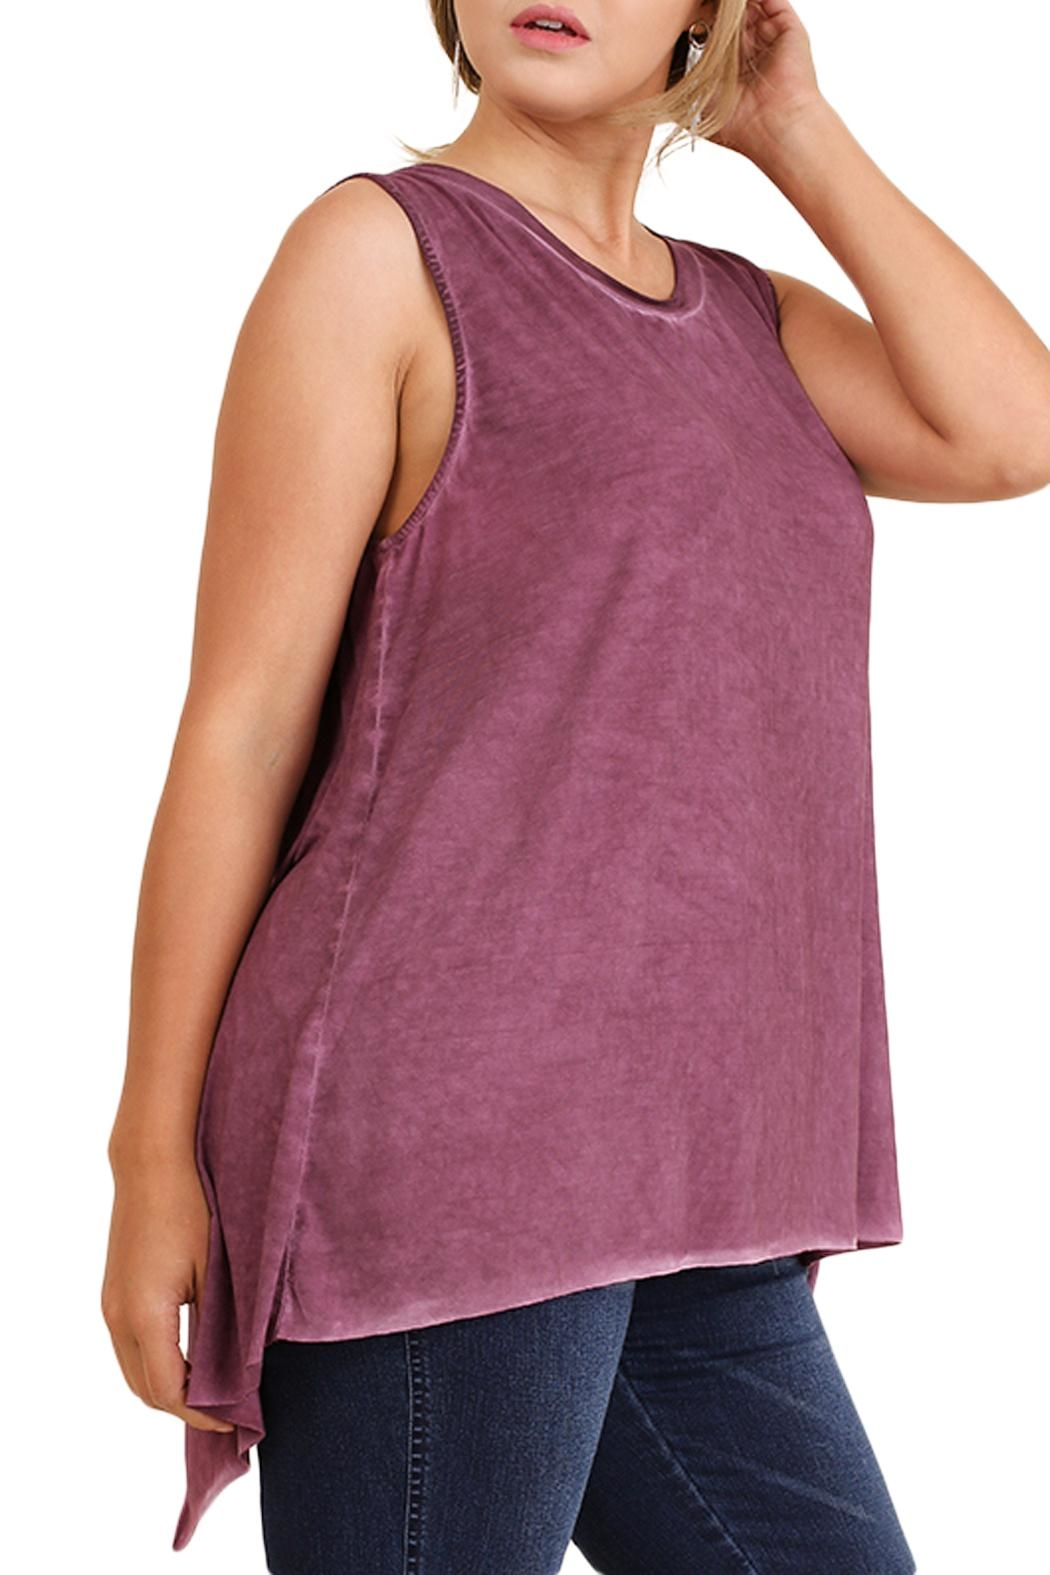 Umgee USA Lace Up Tank Top - Back Cropped Image